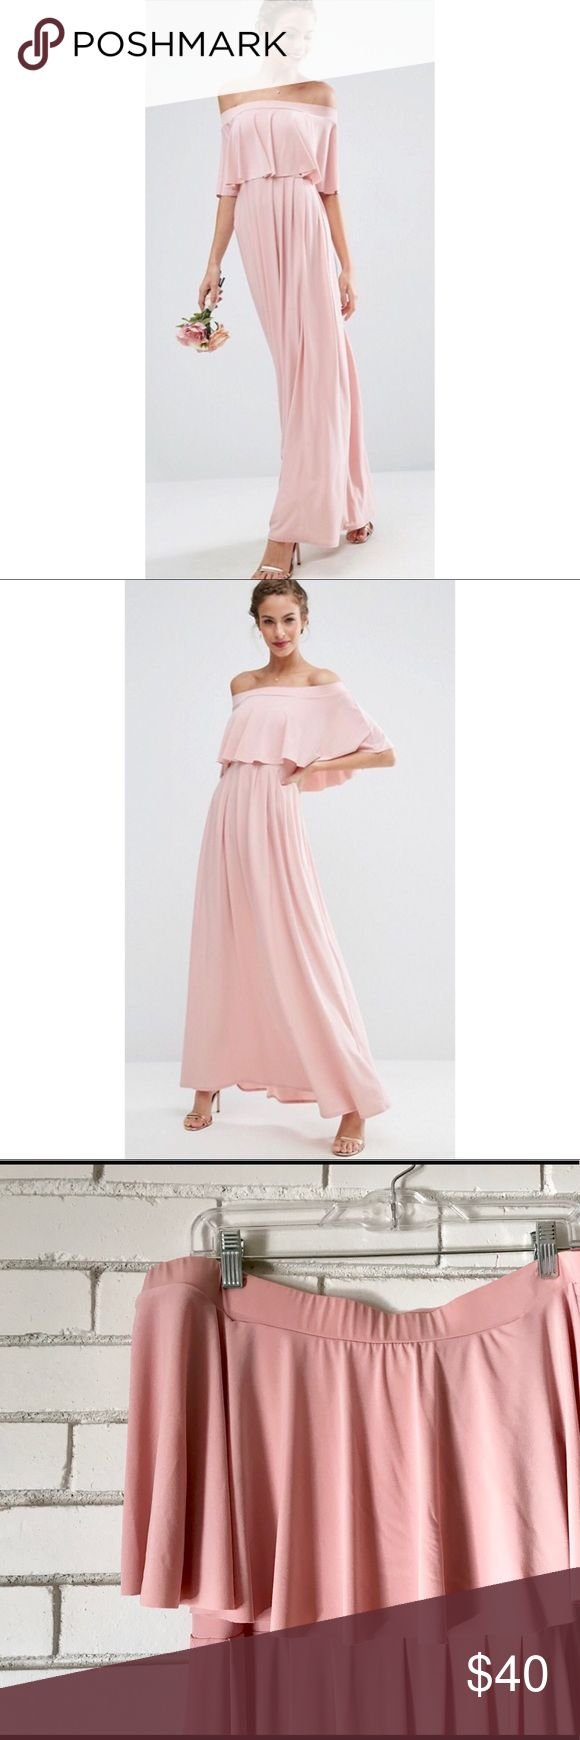 ASOS WEDDING Off Shoulder Frill Maxi Dress WORN ONCE. ASOS baby pink Off Shoulder maxi bridesmaids dress. Very stretchy jersey material, so it's very forgiving size wise. Example I am typically a 12/14, and this dress is a US 8, and I wore it comfortably the entire wedding I wore it for, which is saying a lot for a bridesmaids dress! ASOS Dresses Maxi